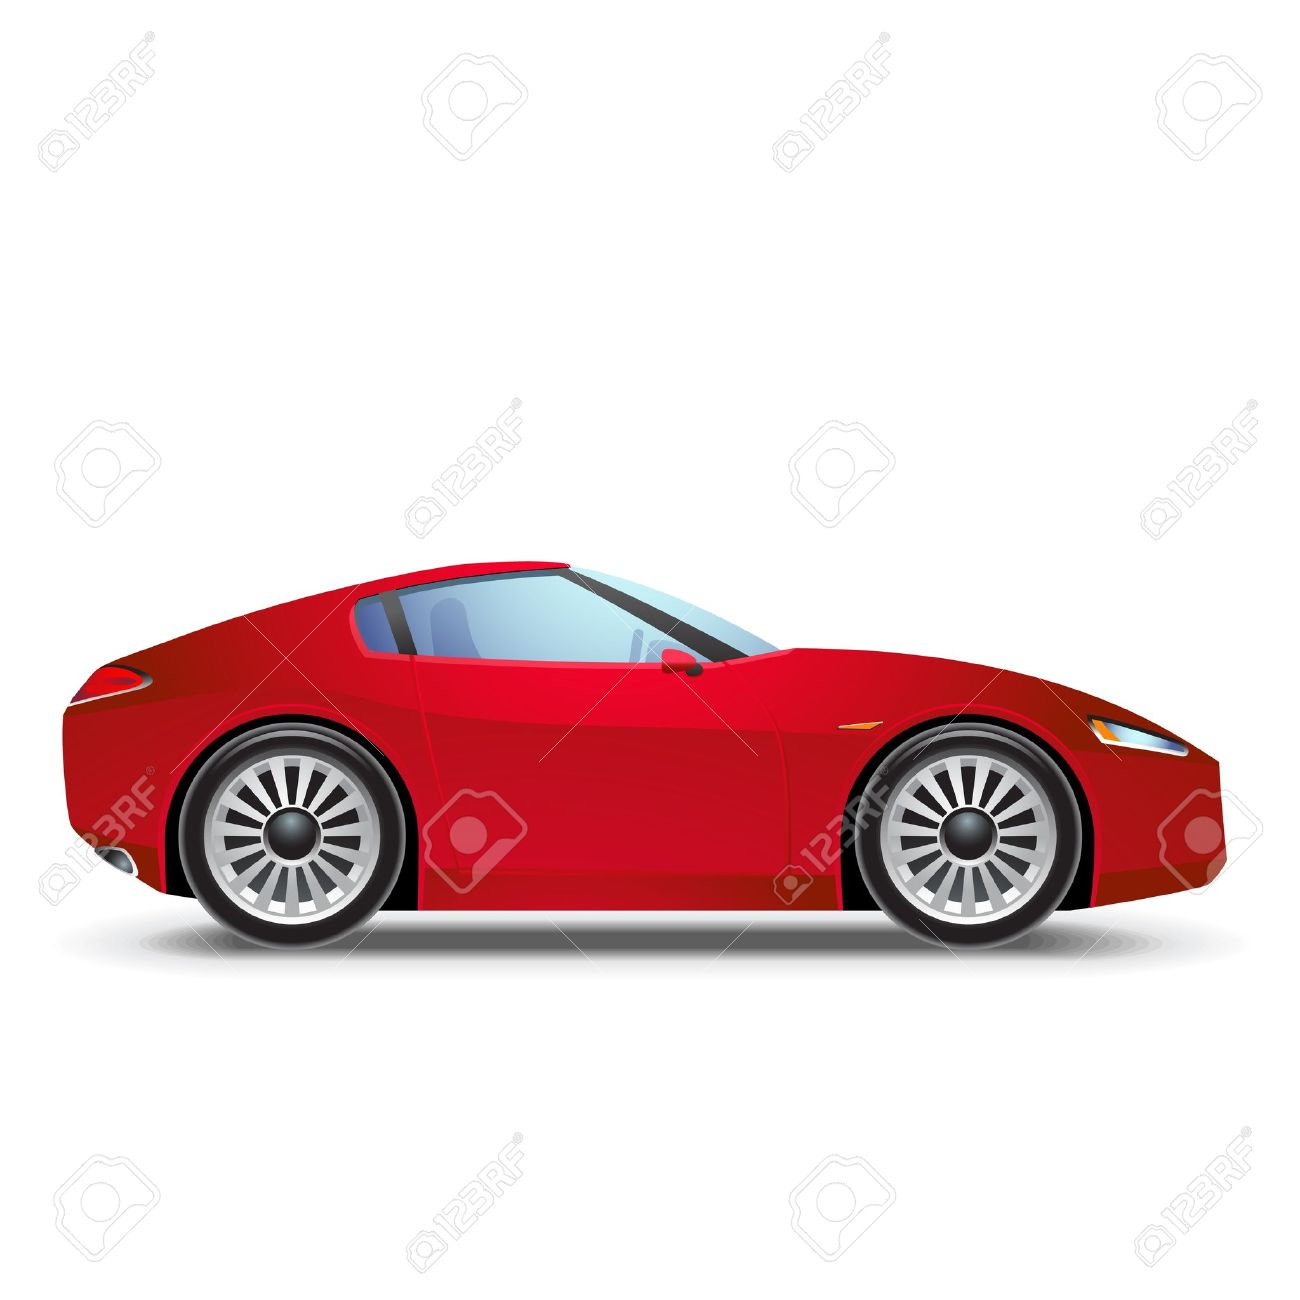 Red Sport car icon  car   Race Car Side View Clipart